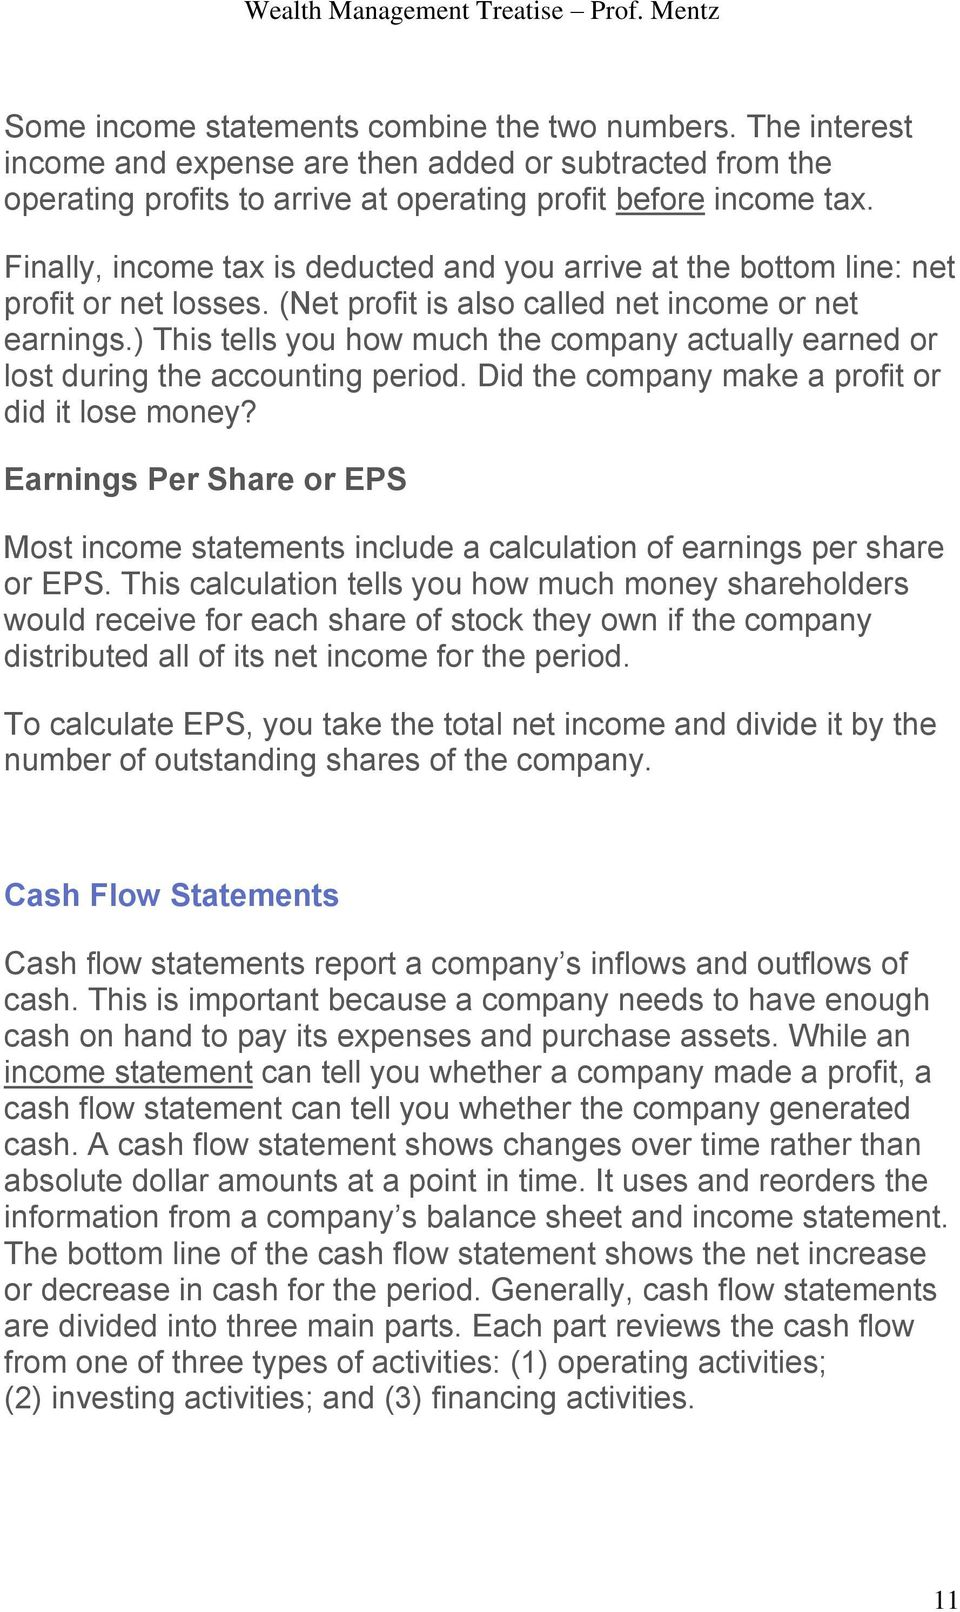 ) This tells you how much the company actually earned or lost during the accounting period. Did the company make a profit or did it lose money?